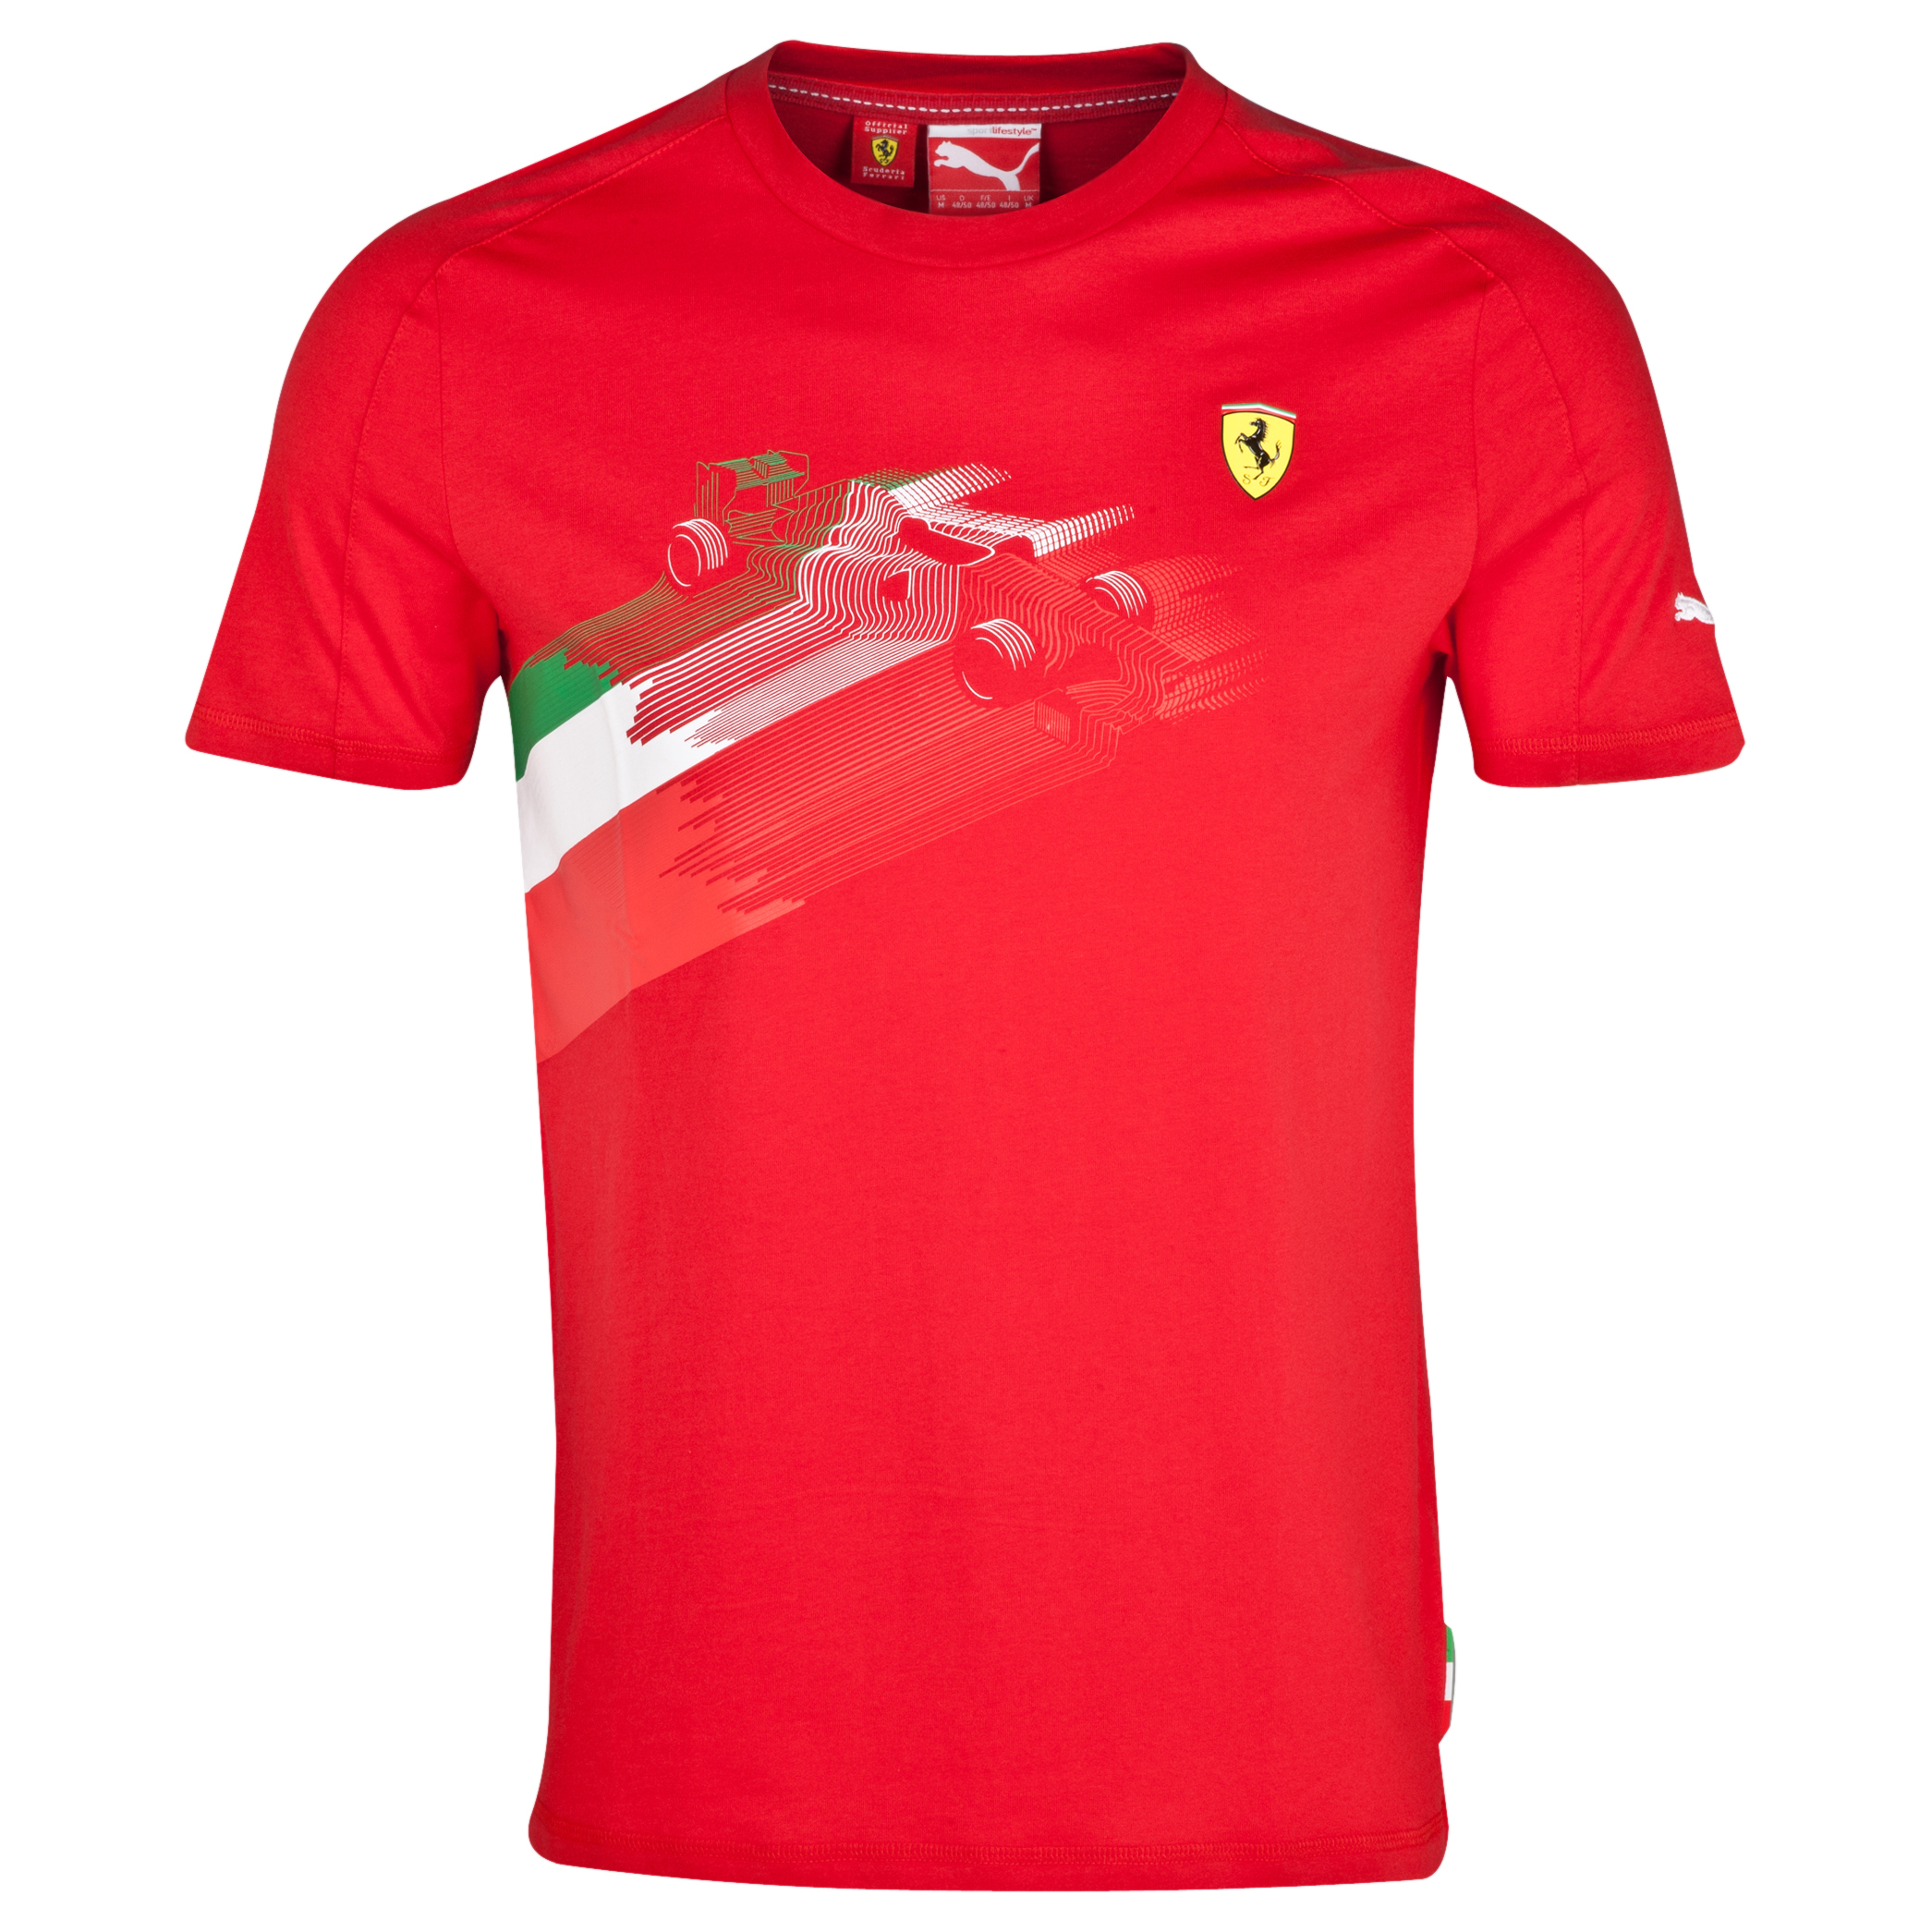 Scuderia Ferrari Triclour Car Graphic T-Shirt Red